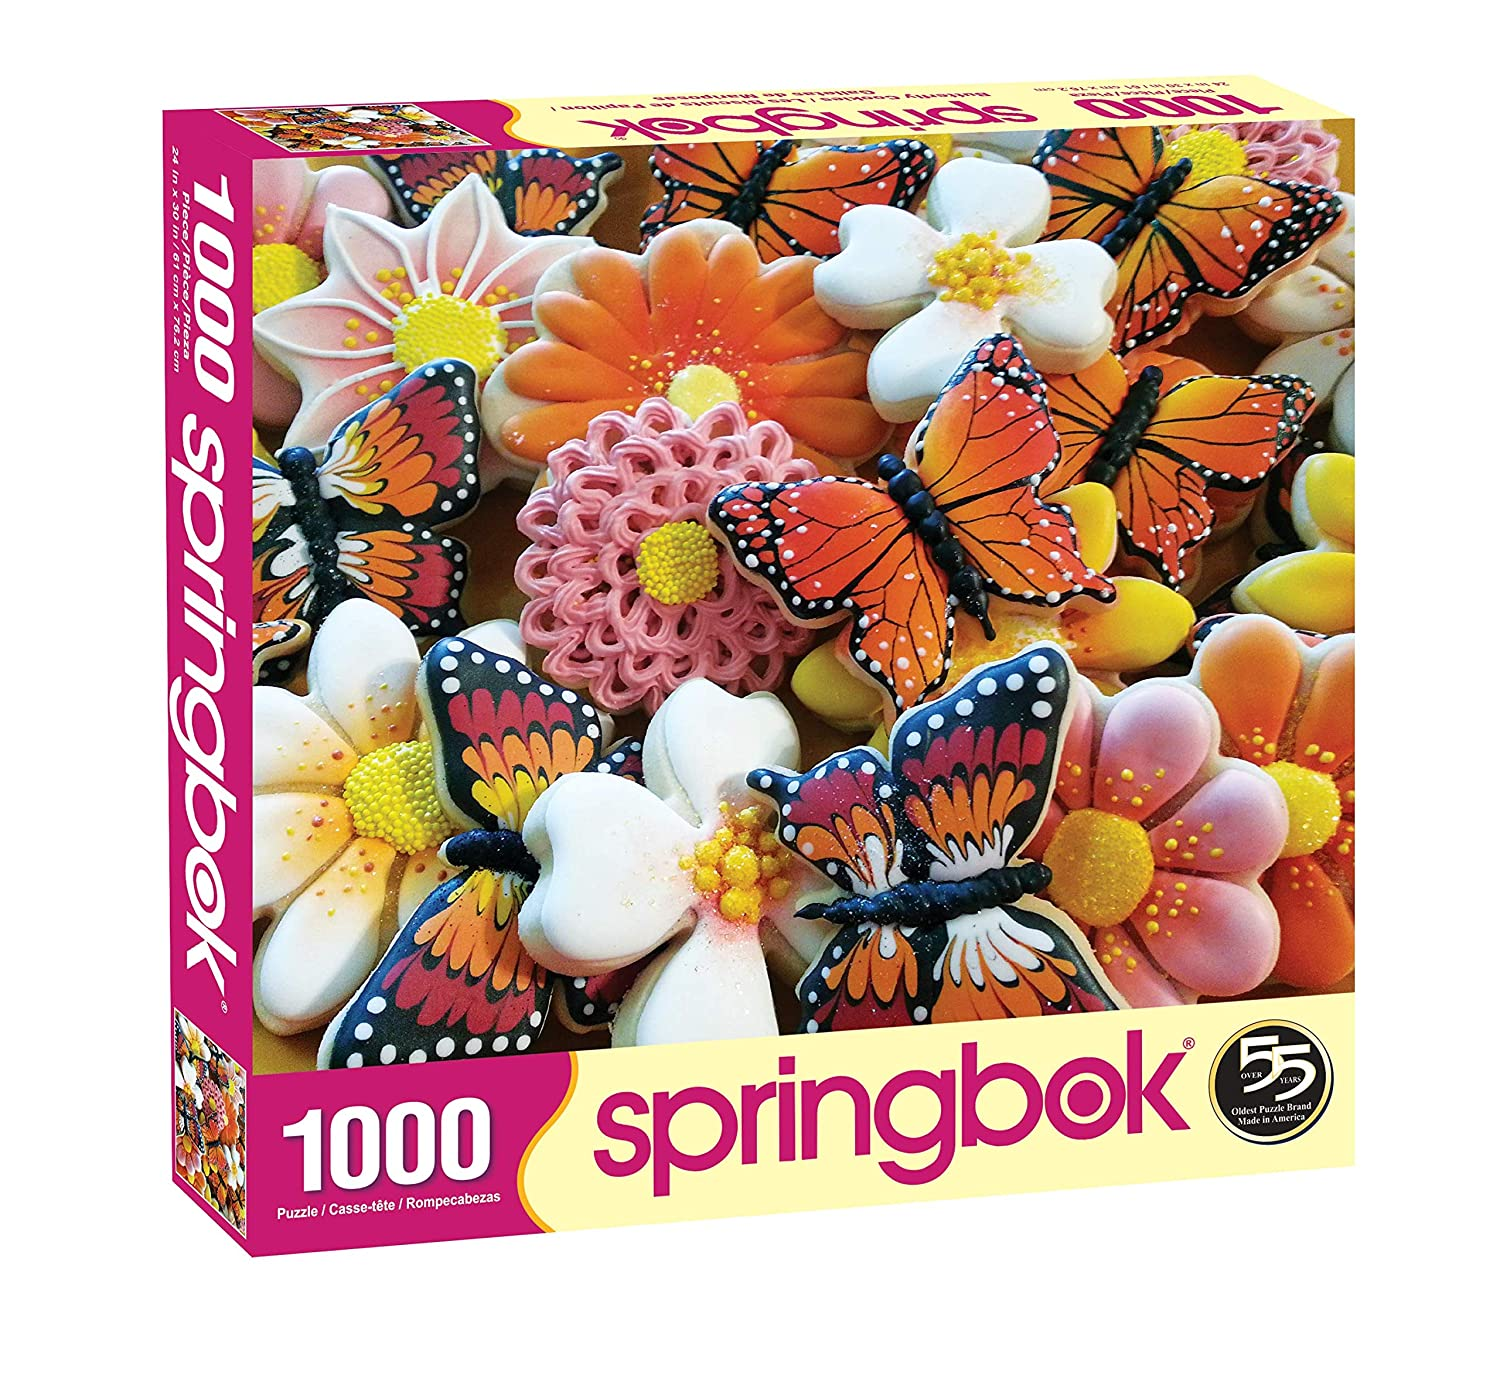 Springbok Butterfly Cookies 1000 Piece Jigsaw Puzzle and Apron Gift Set